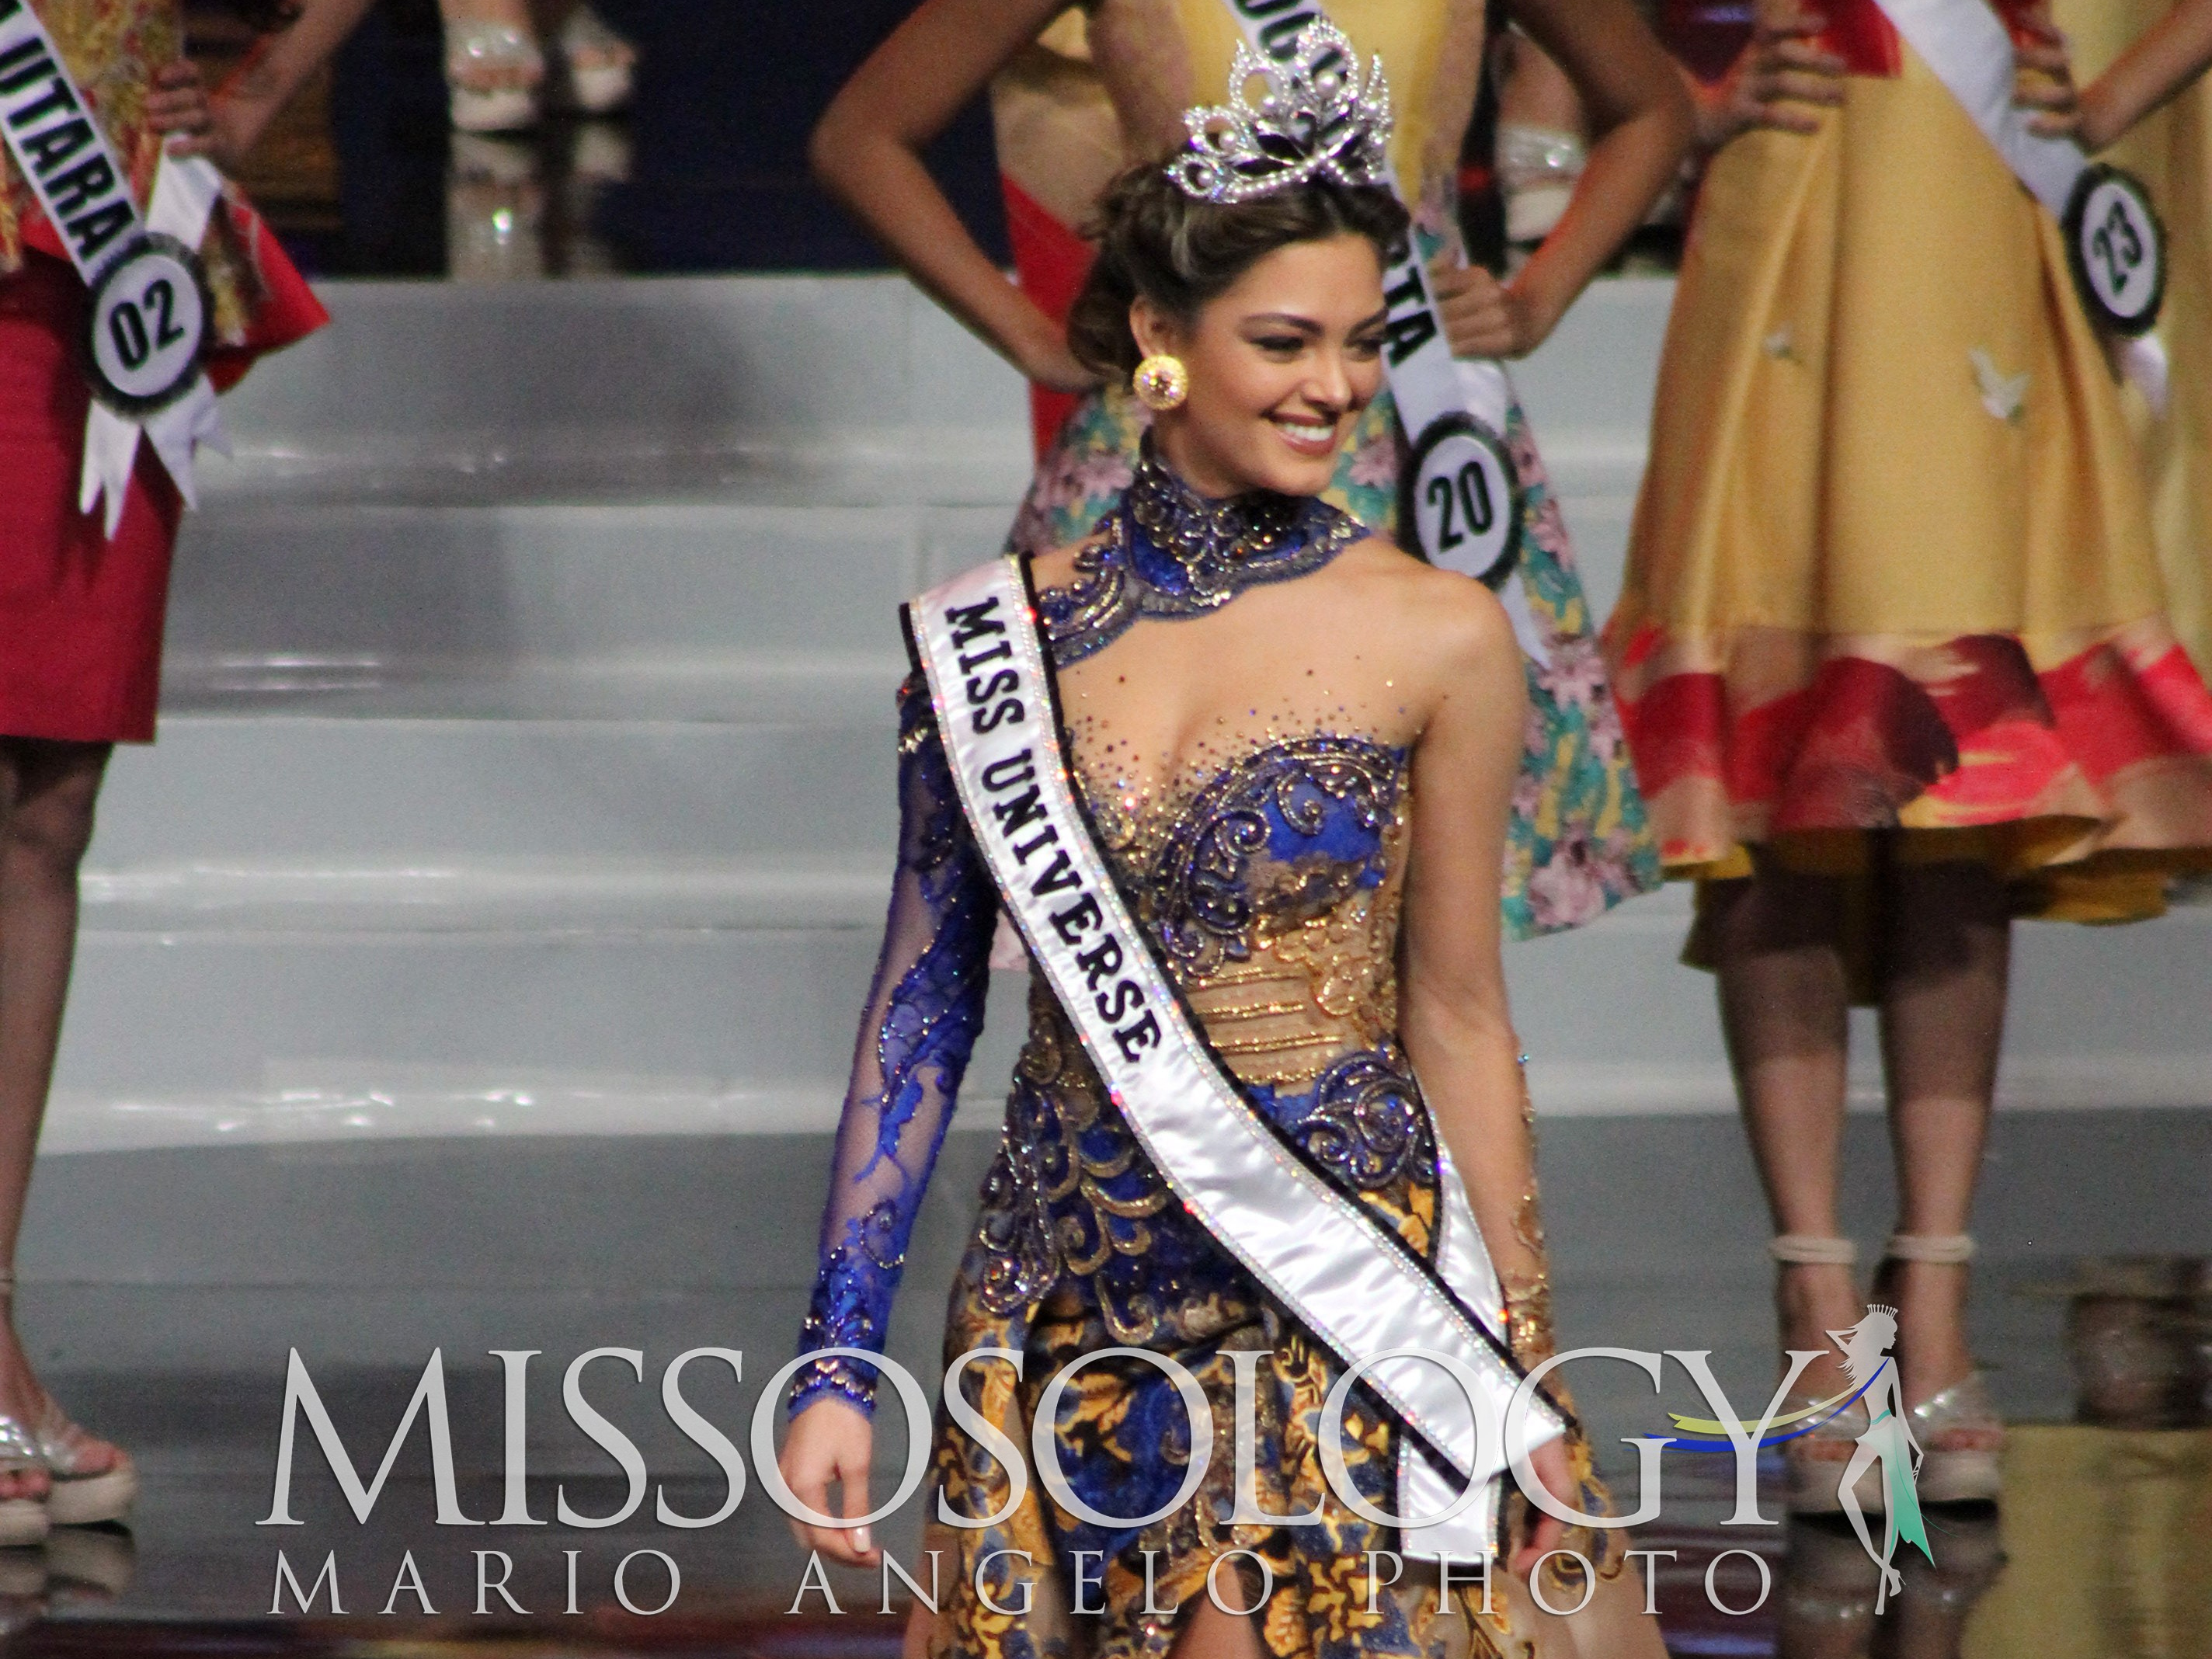 Philippines Miss Universe 2018 >> Miss Universe 2017 Demi Leigh Nel-Peters sizzles in her kebaya - Missosology